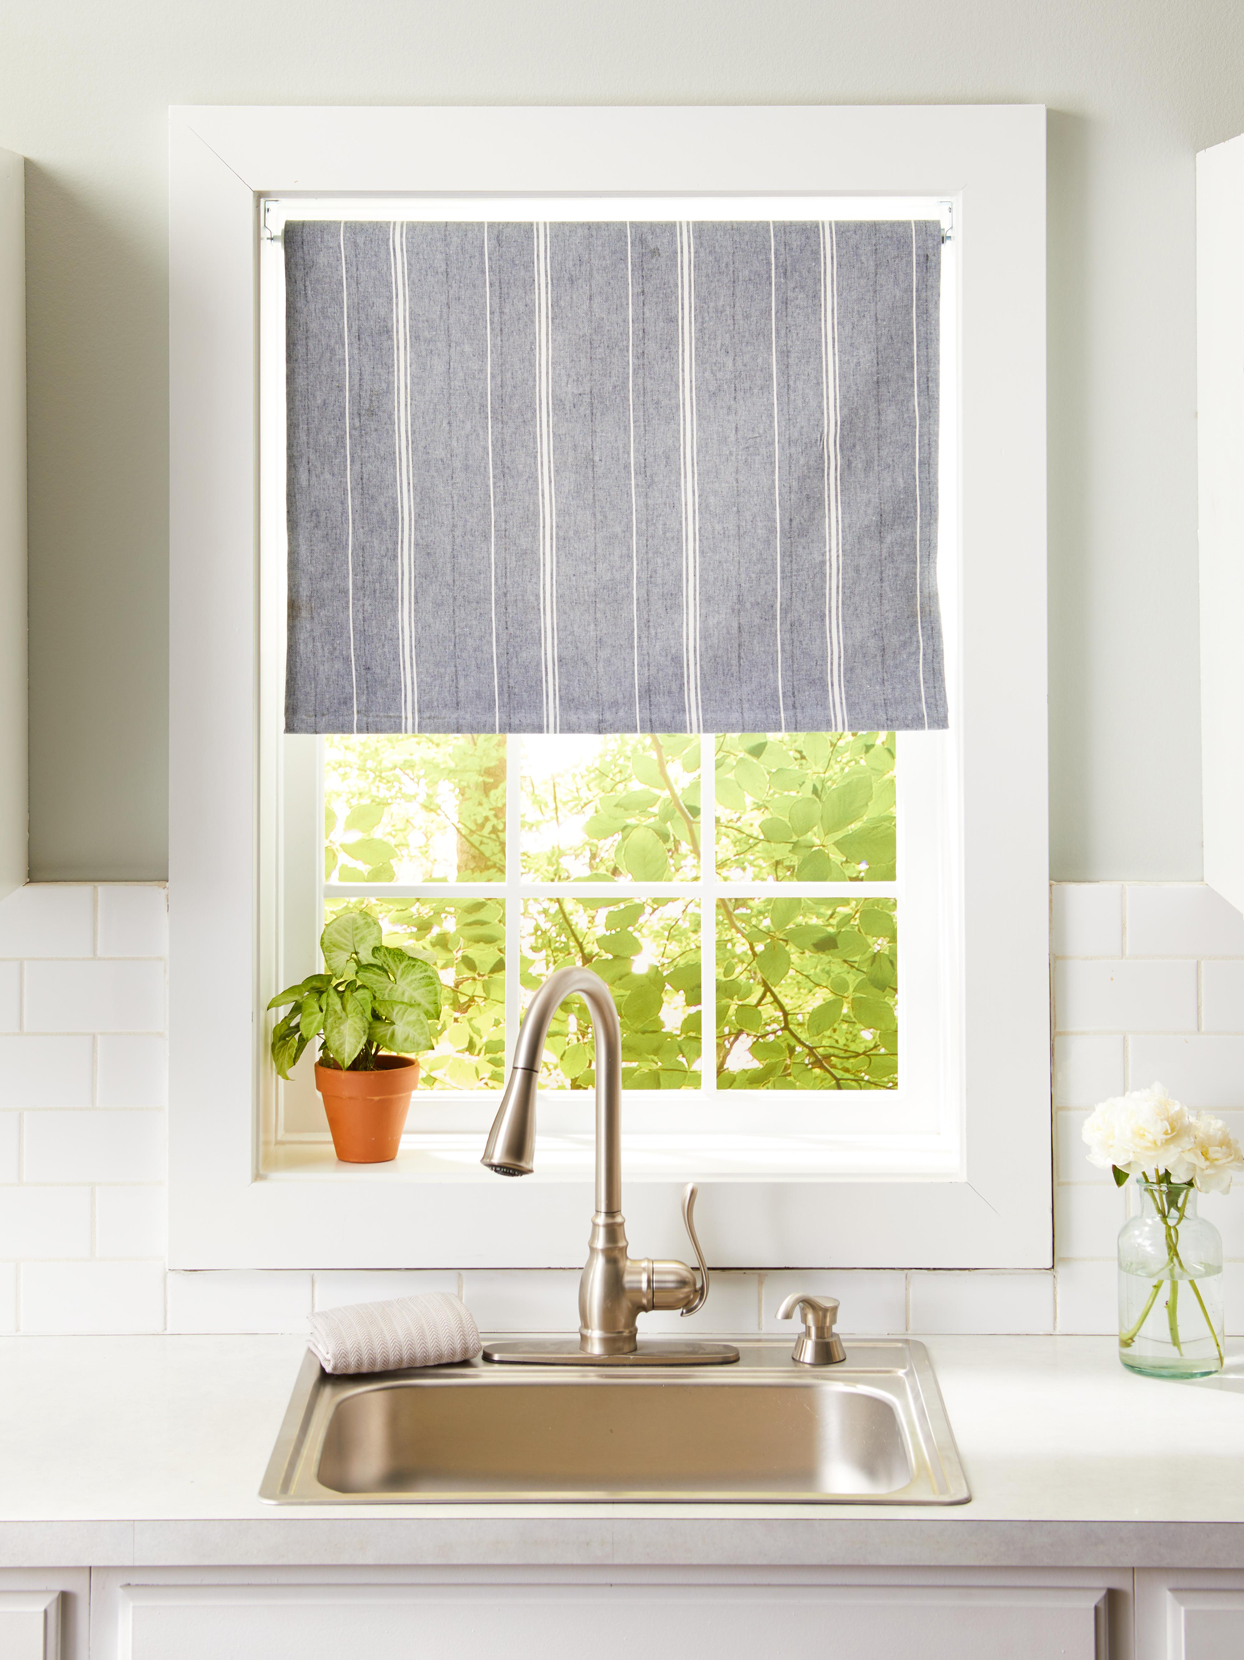 16 Diy Kitchen Window Treatments For An Easy Refresh Better Homes Gardens